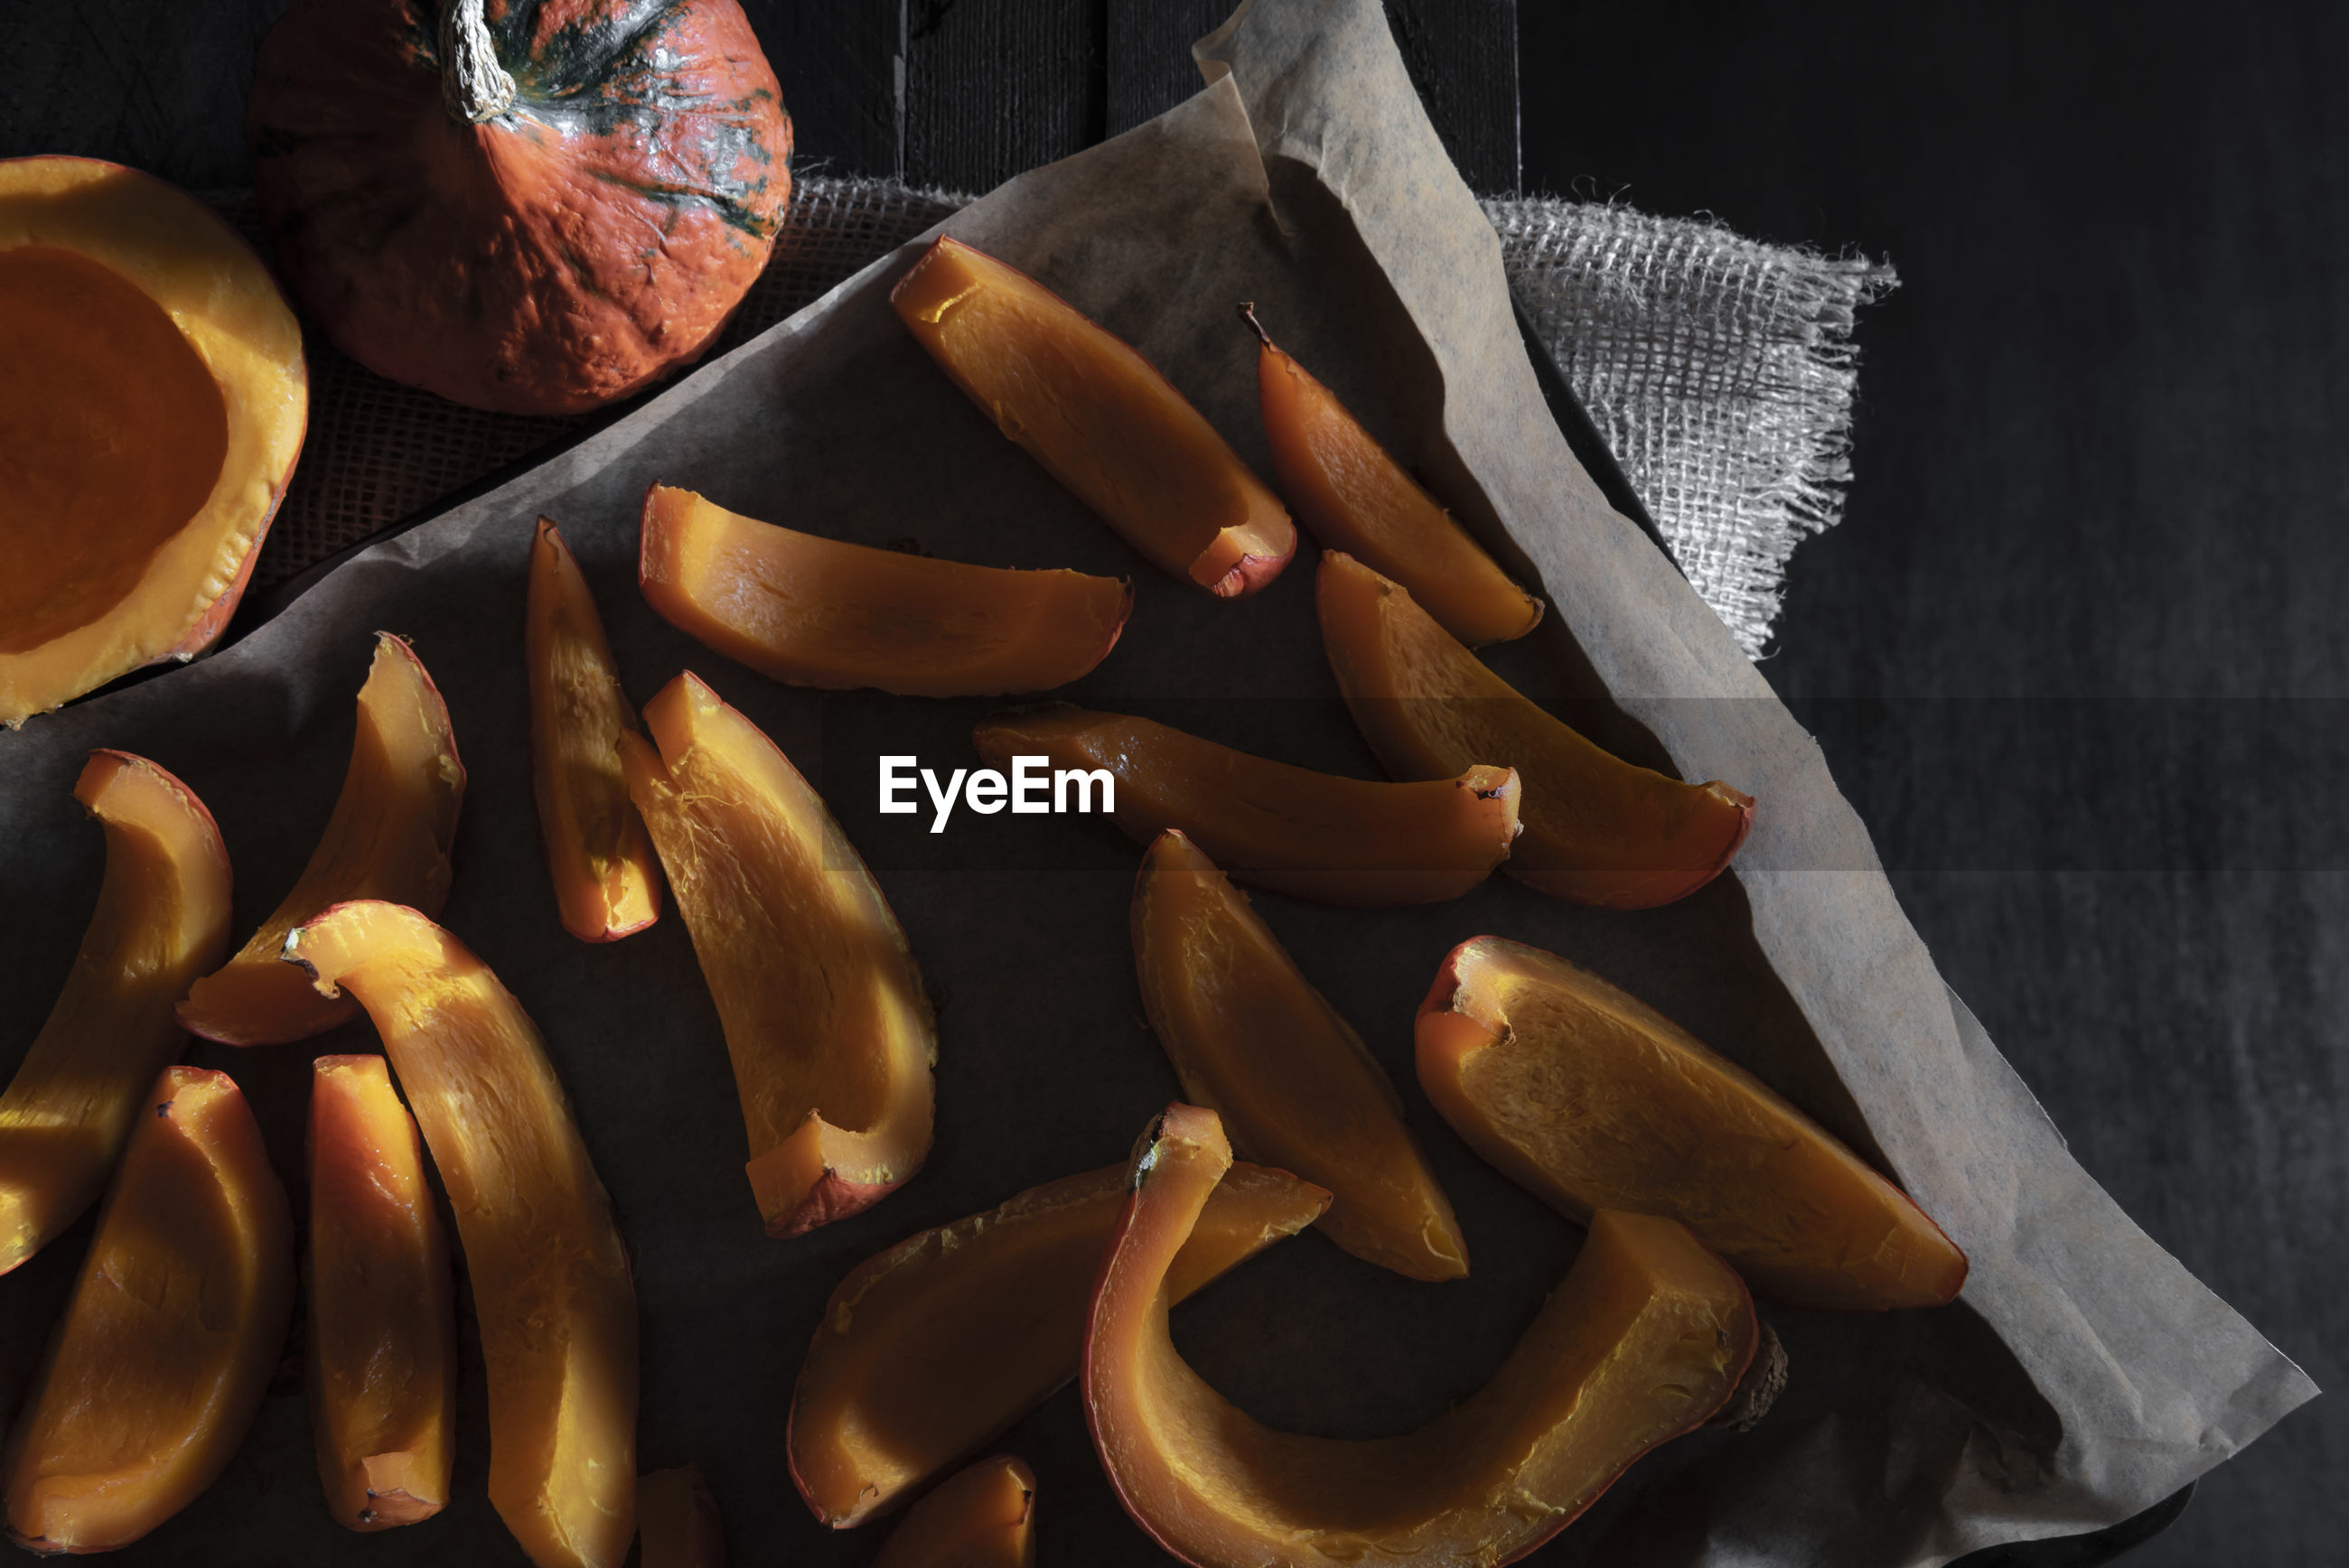 High angle view of pumpkin slices on table